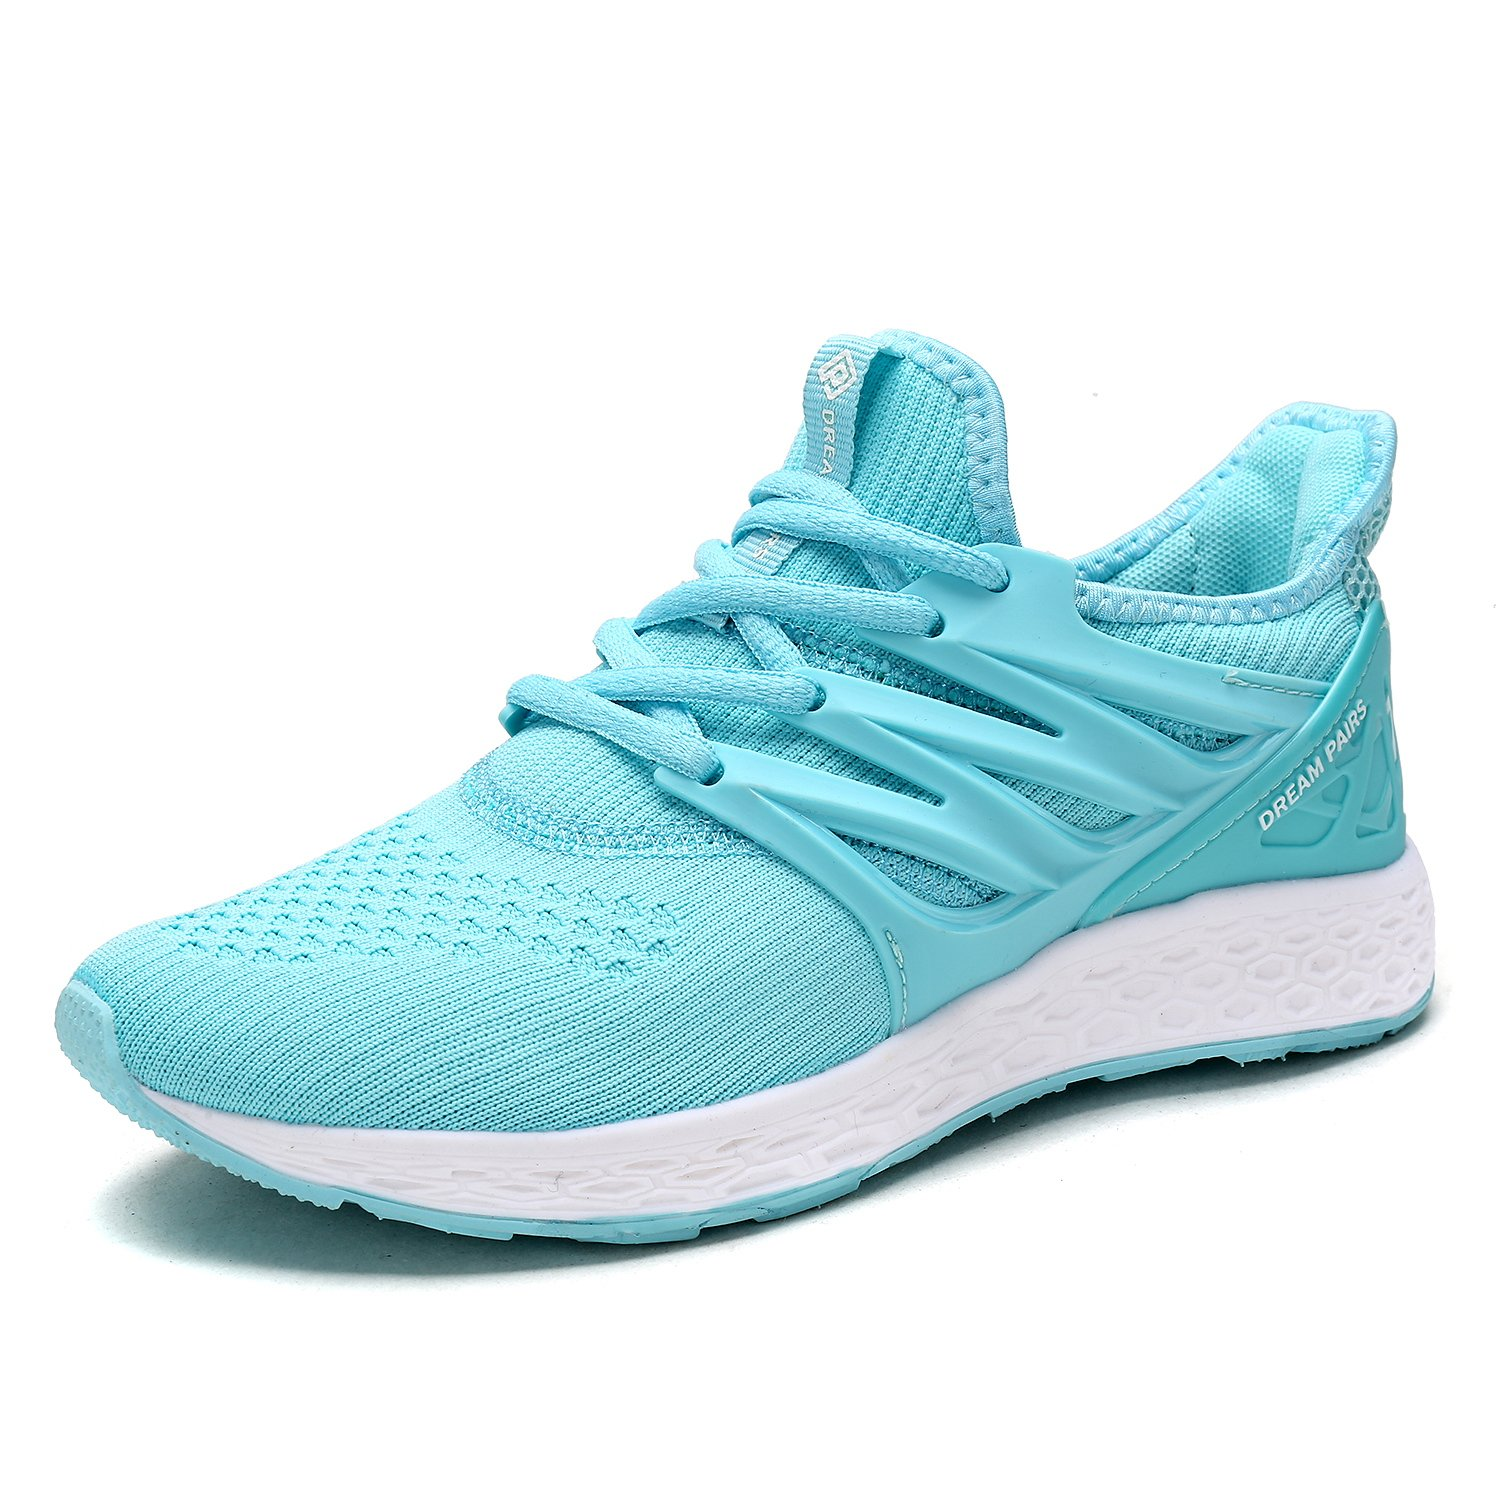 DREAM PAIRS Womens Running Shoes B075FDMR2R 7.5 B(M) US|Mint